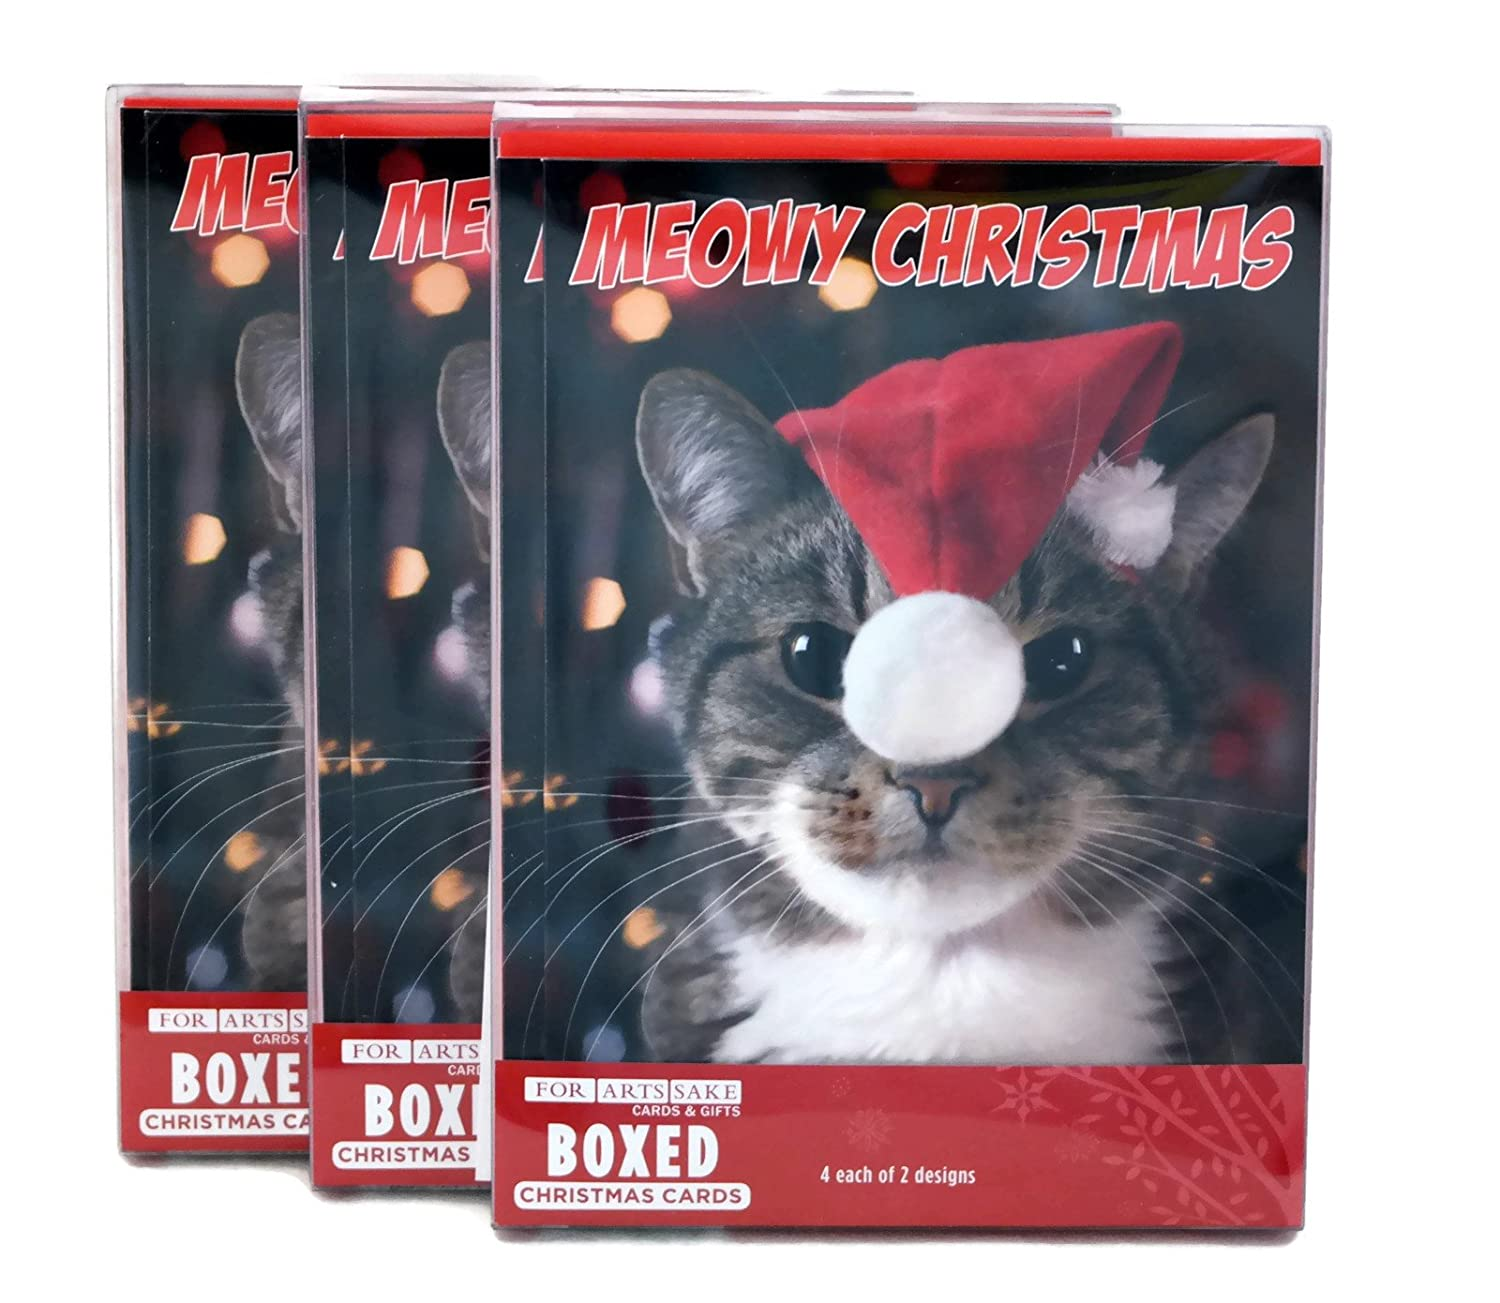 Amazon.com : Merry Christmas Holiday Greeting Cards, Adorable Cat ...